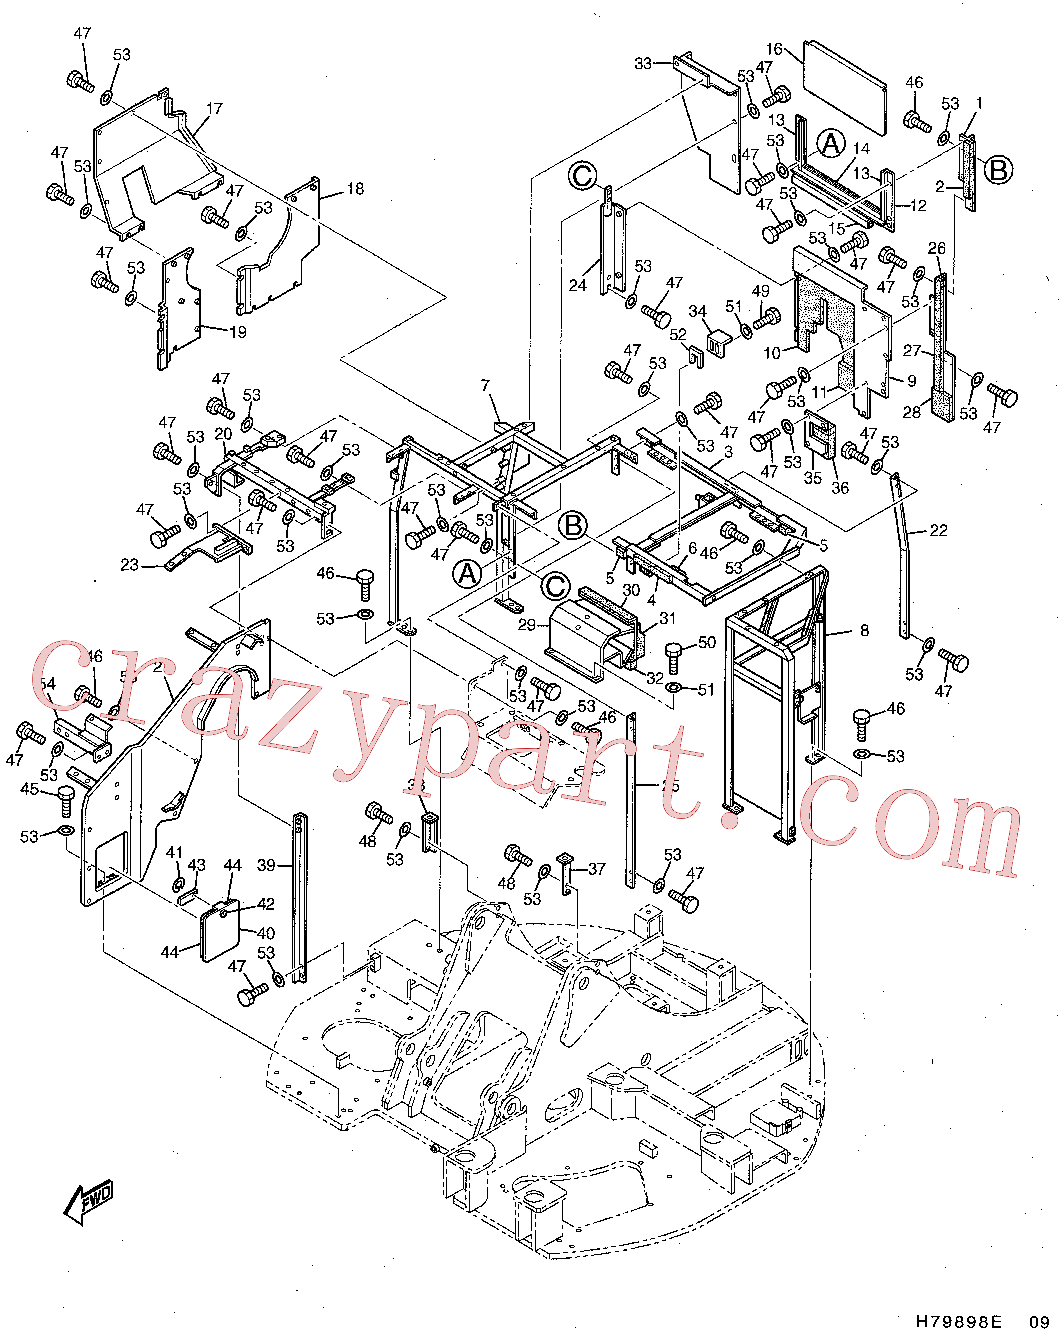 CAT 9X-2027 for 330 Excavator(EXC) frame and body 161-7785 Assembly